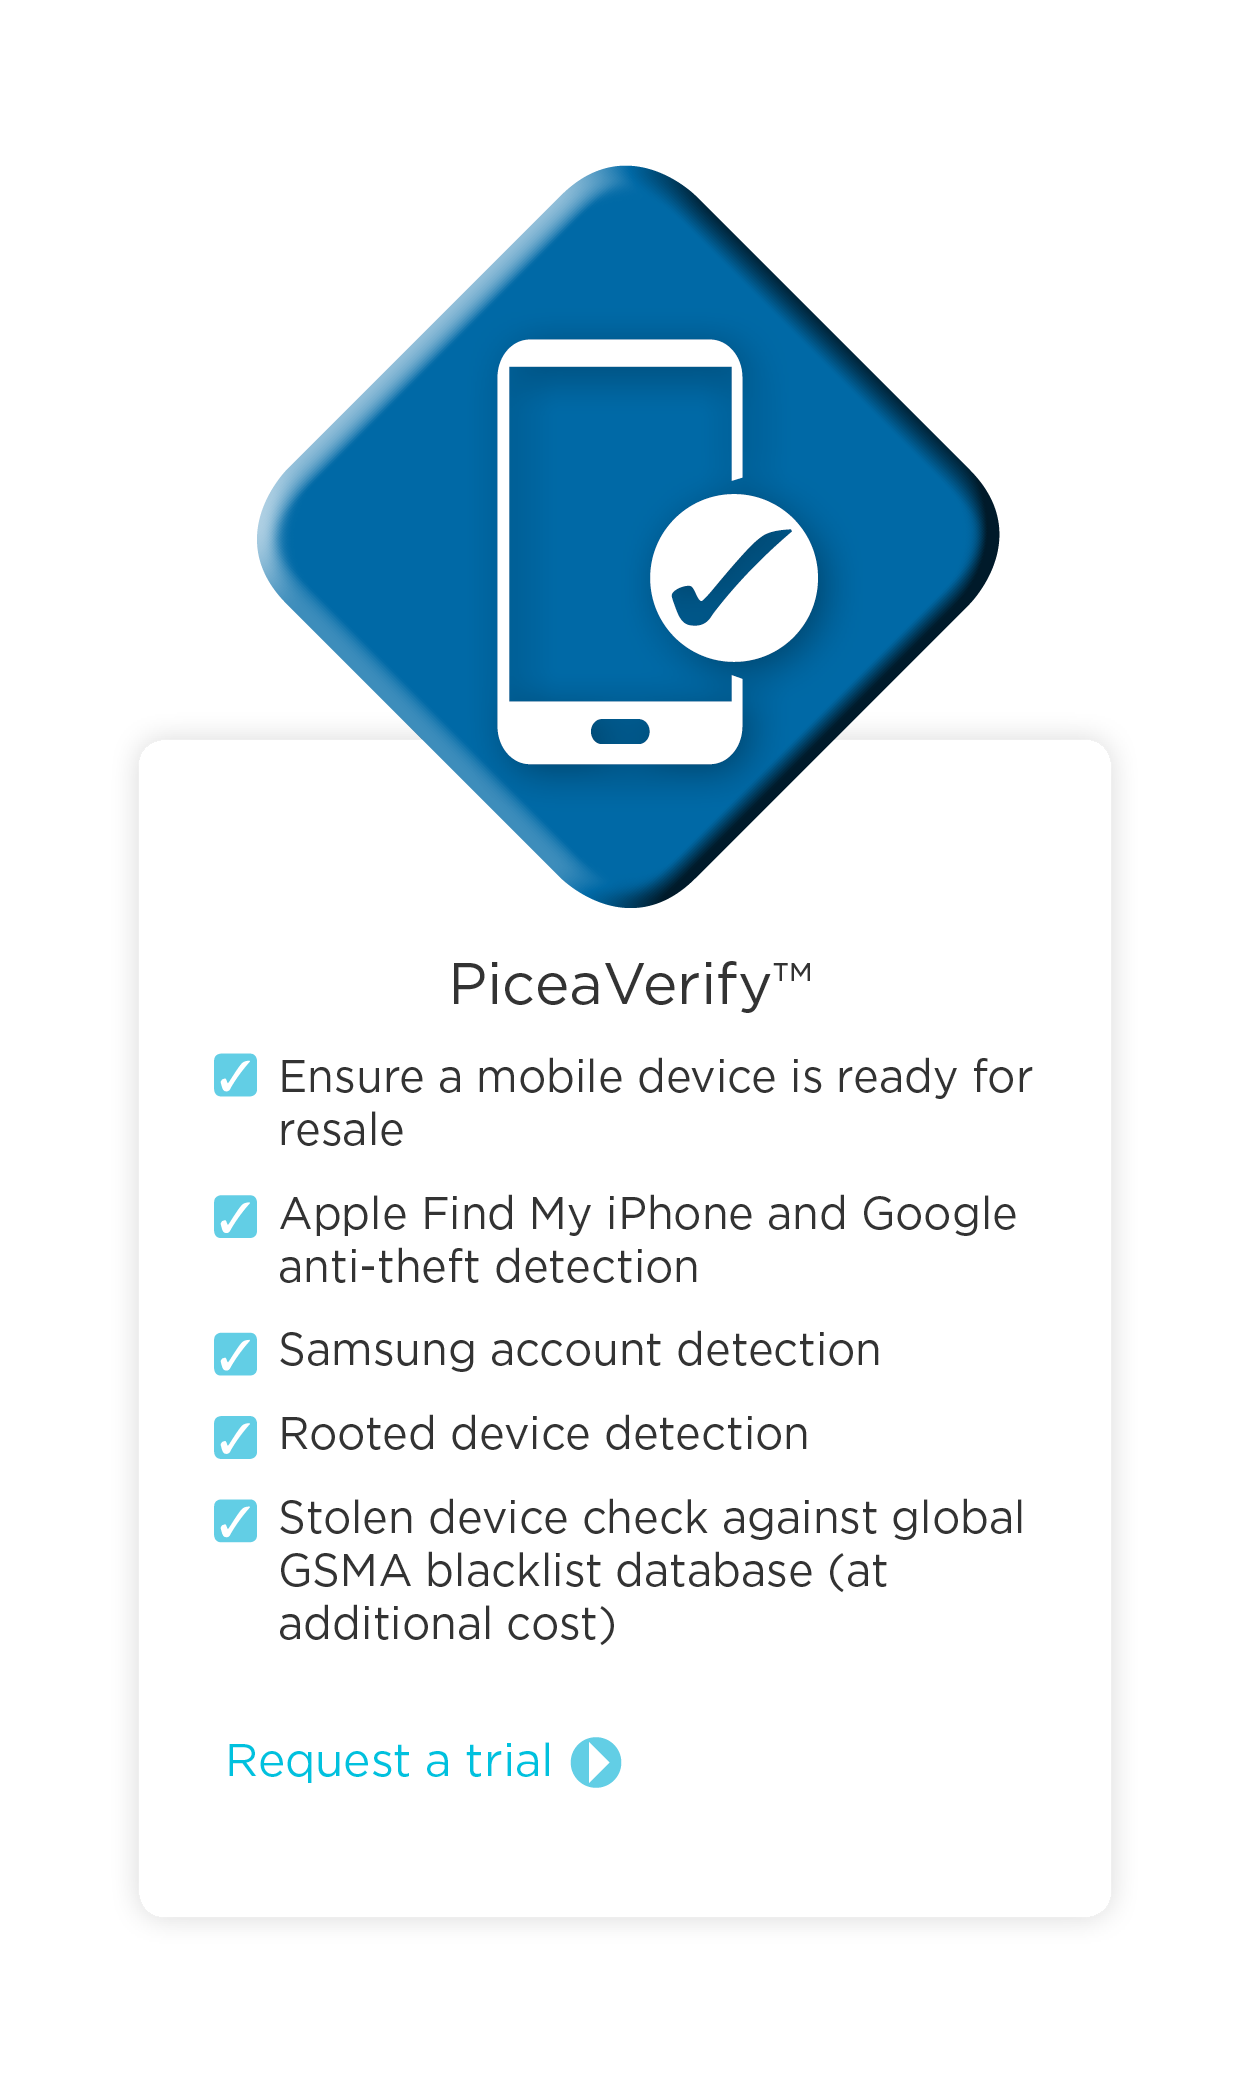 PiceaVerify